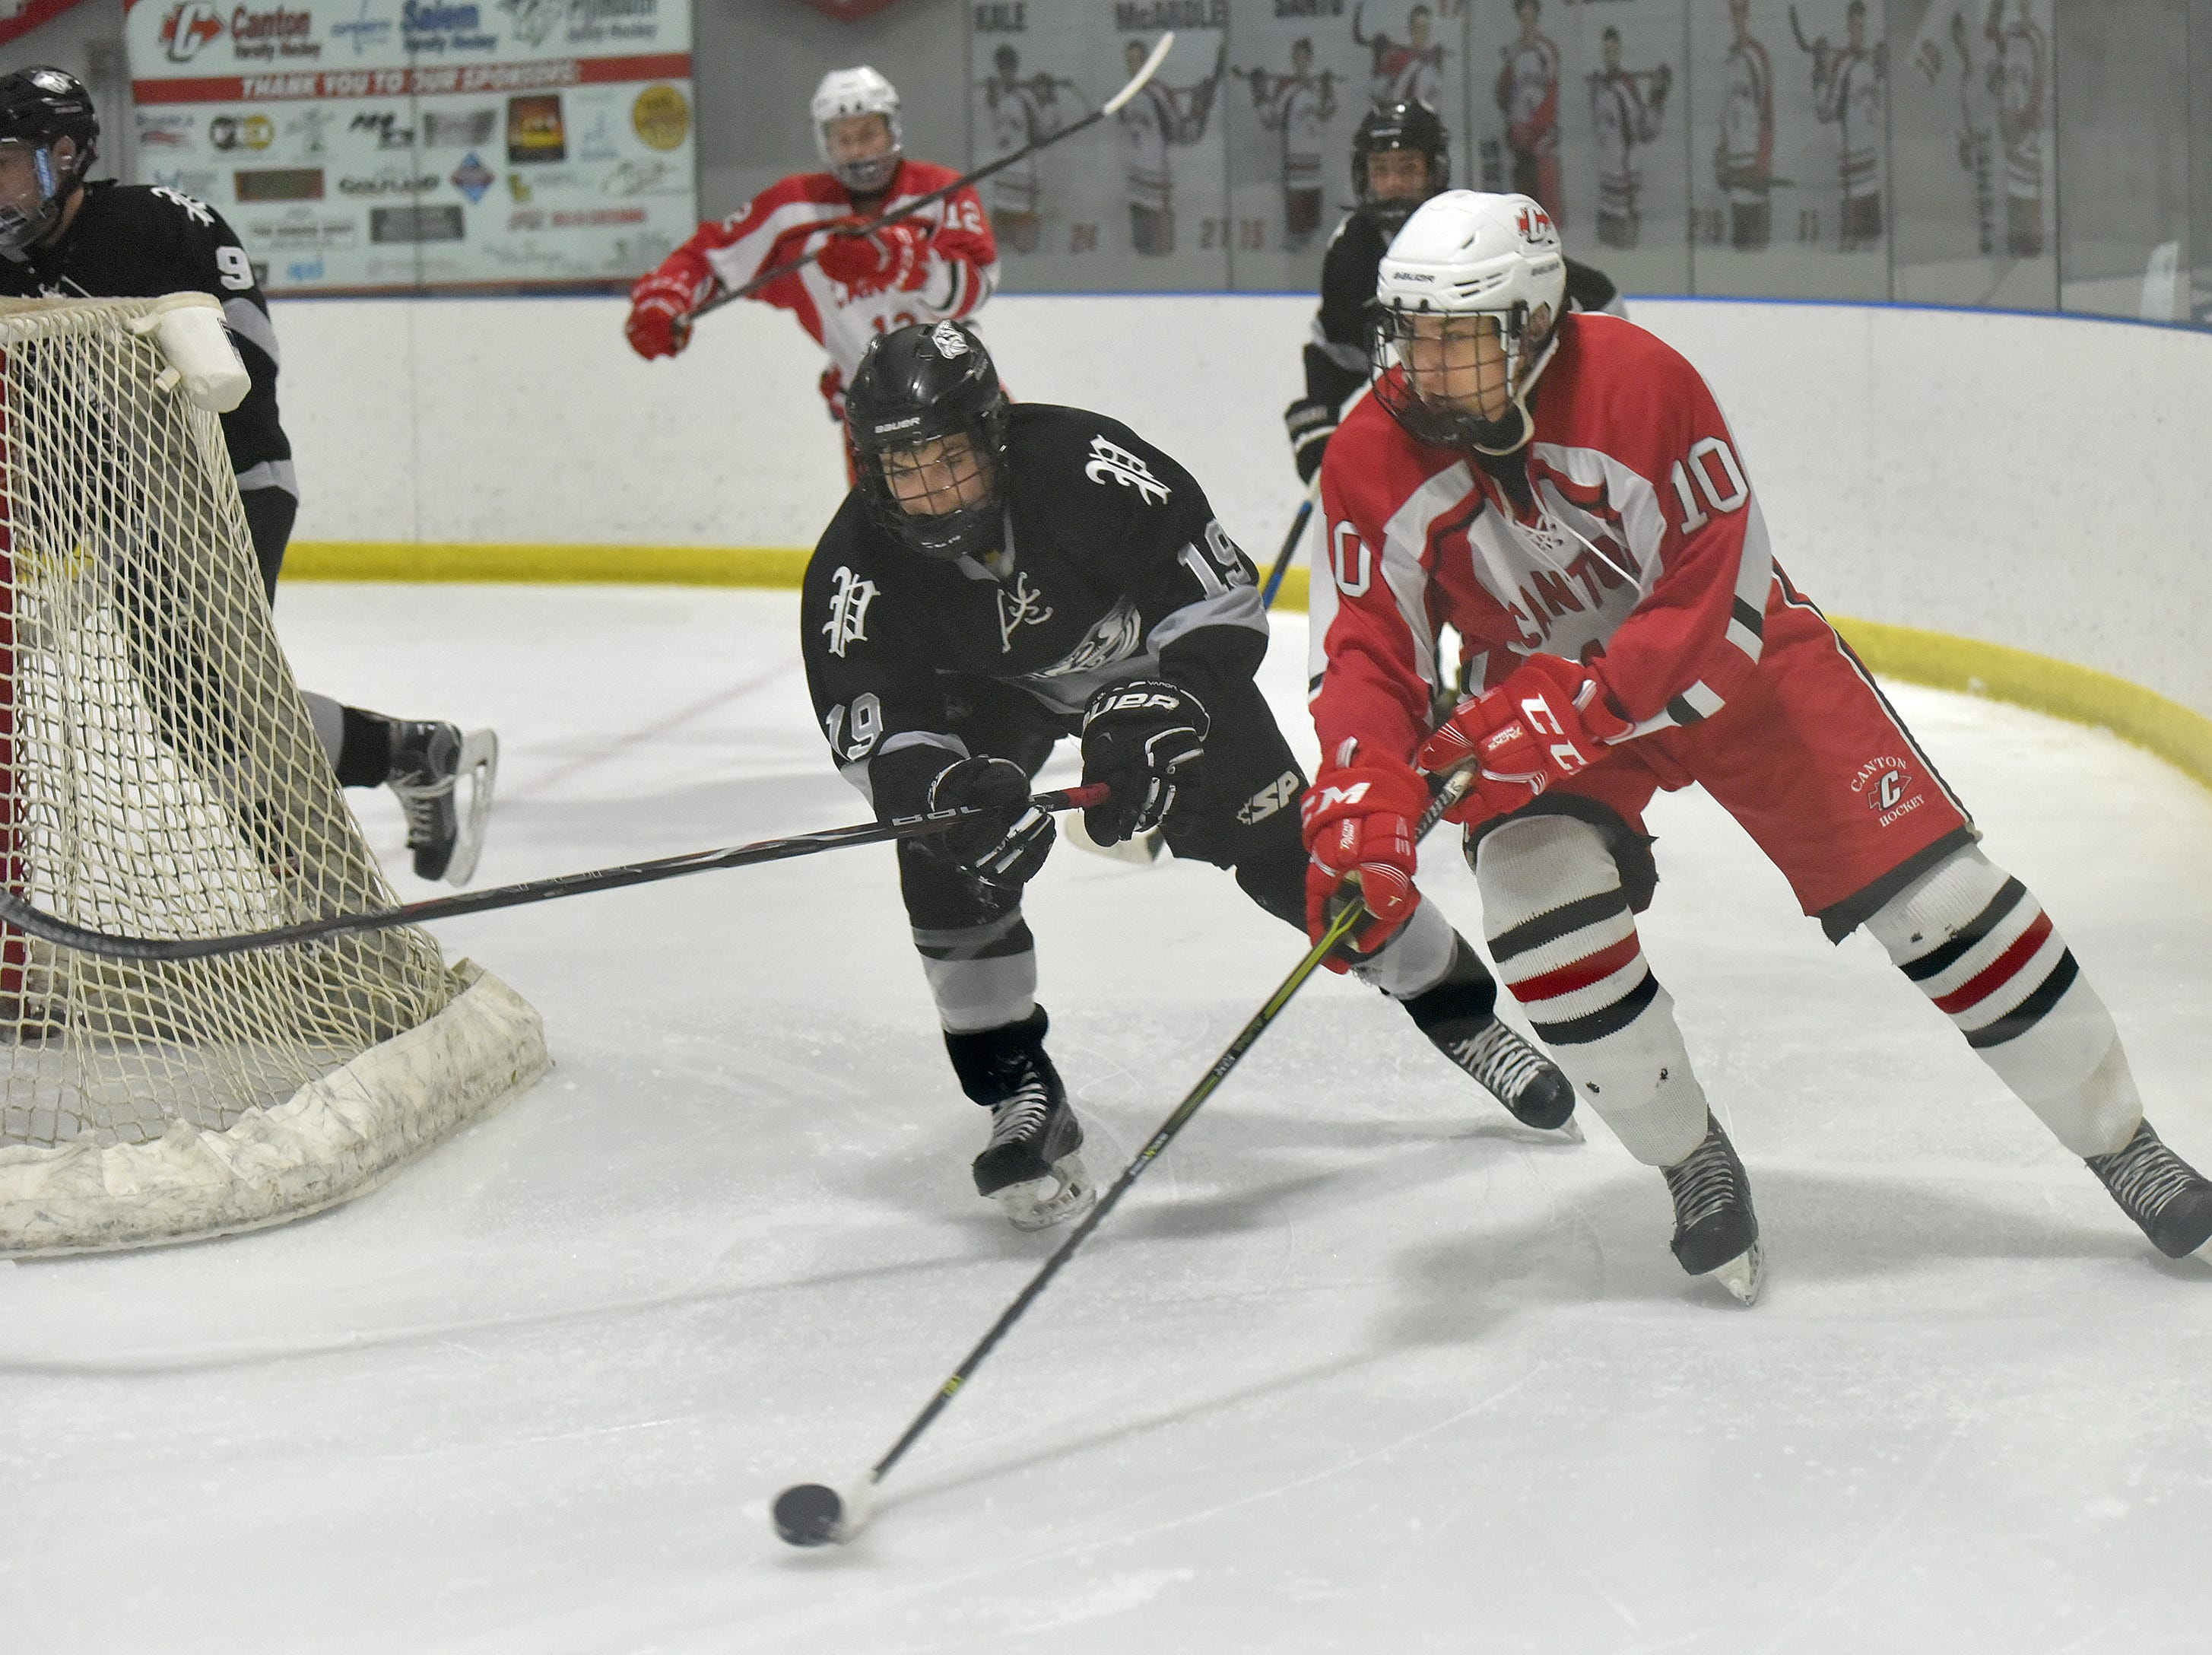 Chief defender Hadley Hudak (10) and Plymouth's Gavin Roach, behind the Canton net.